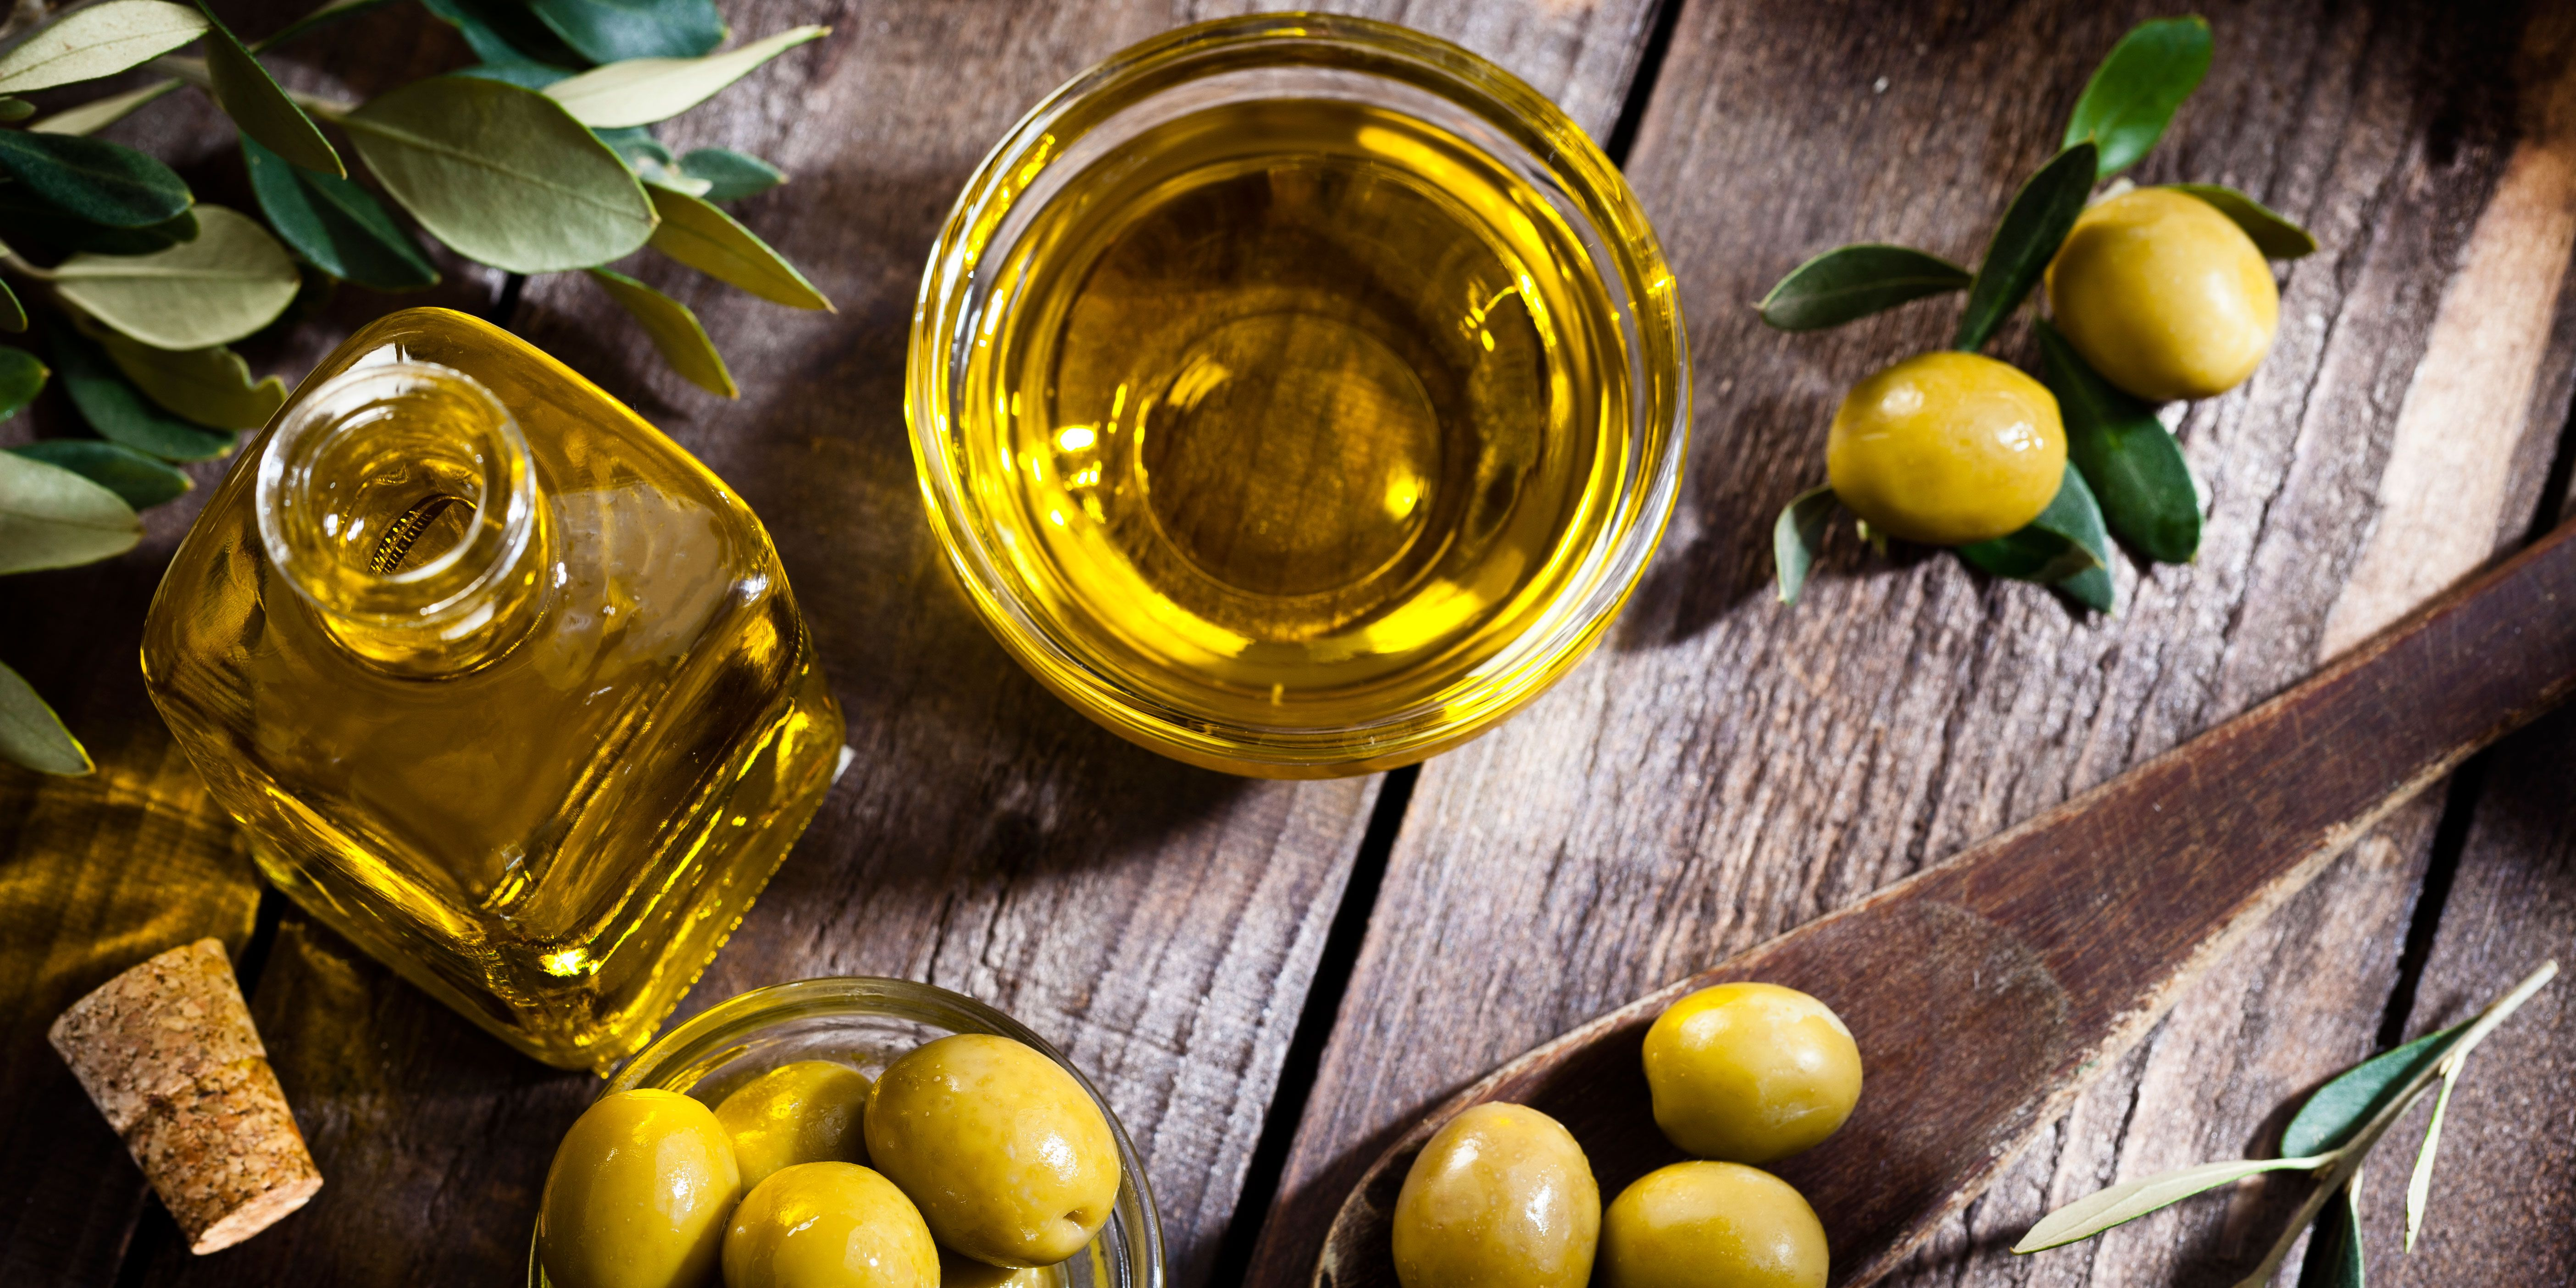 This Cooking Expert Says the Best Olive Oil Comes From Costco